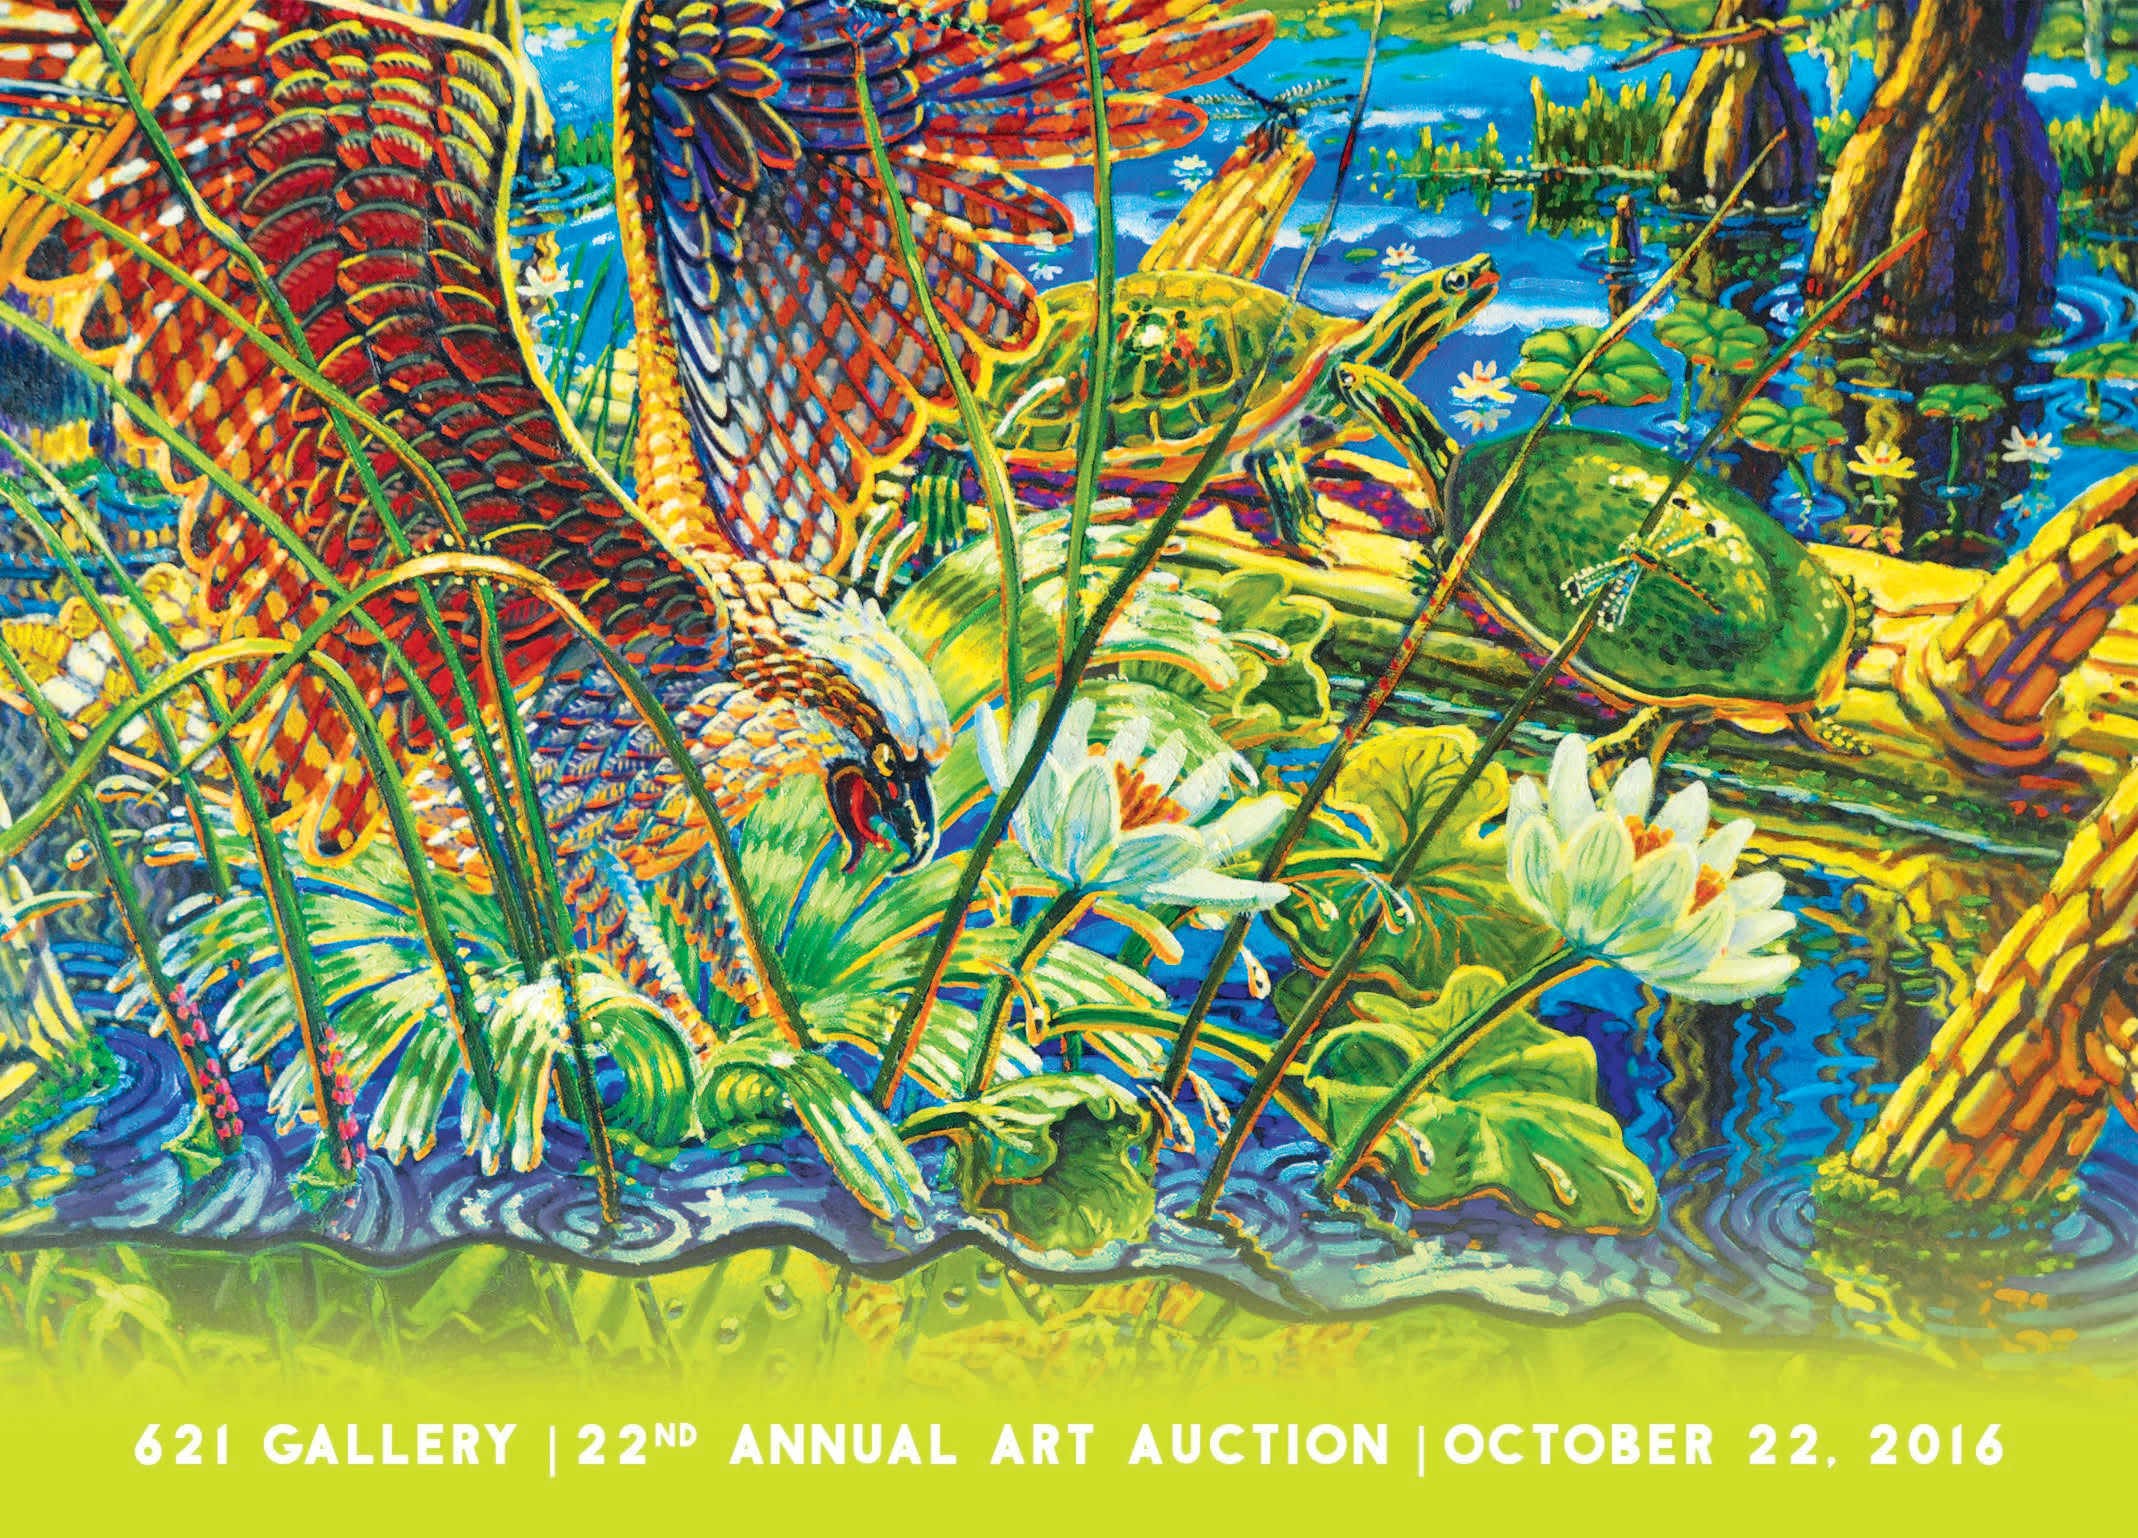 October 2016 at 621 Gallery: 22nd Annual Art Auction!